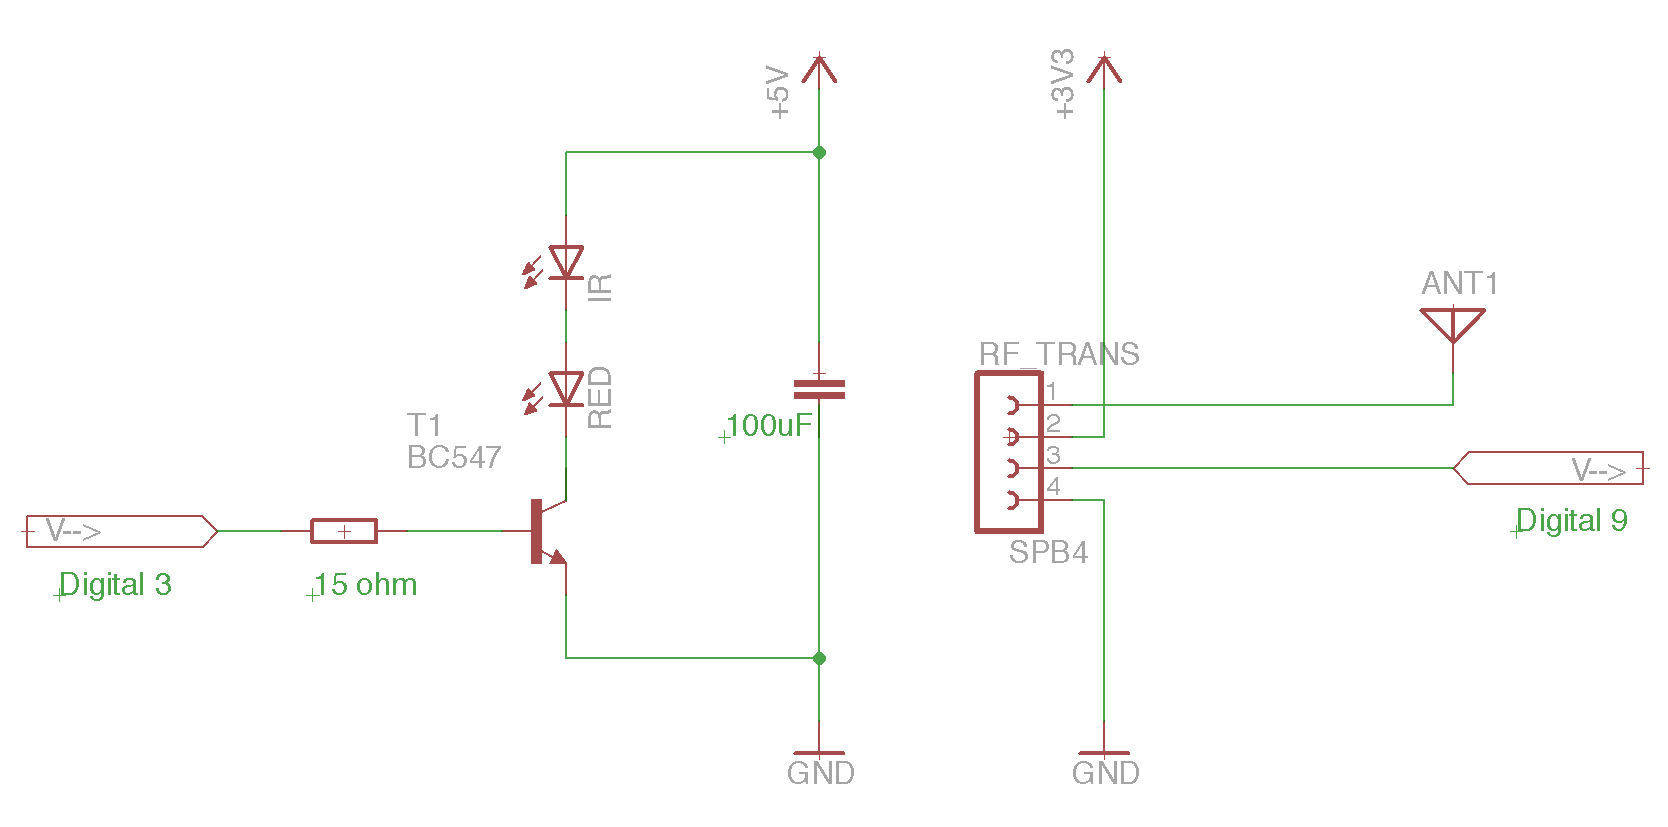 led schematic with Arduino Rf Ir Remote Control on Arduino And 4051 Led Ex le additionally  together with Rgb Led Brightness Levels moreover Usb Wiring Diagram Power Wires also PS0 28 6A.